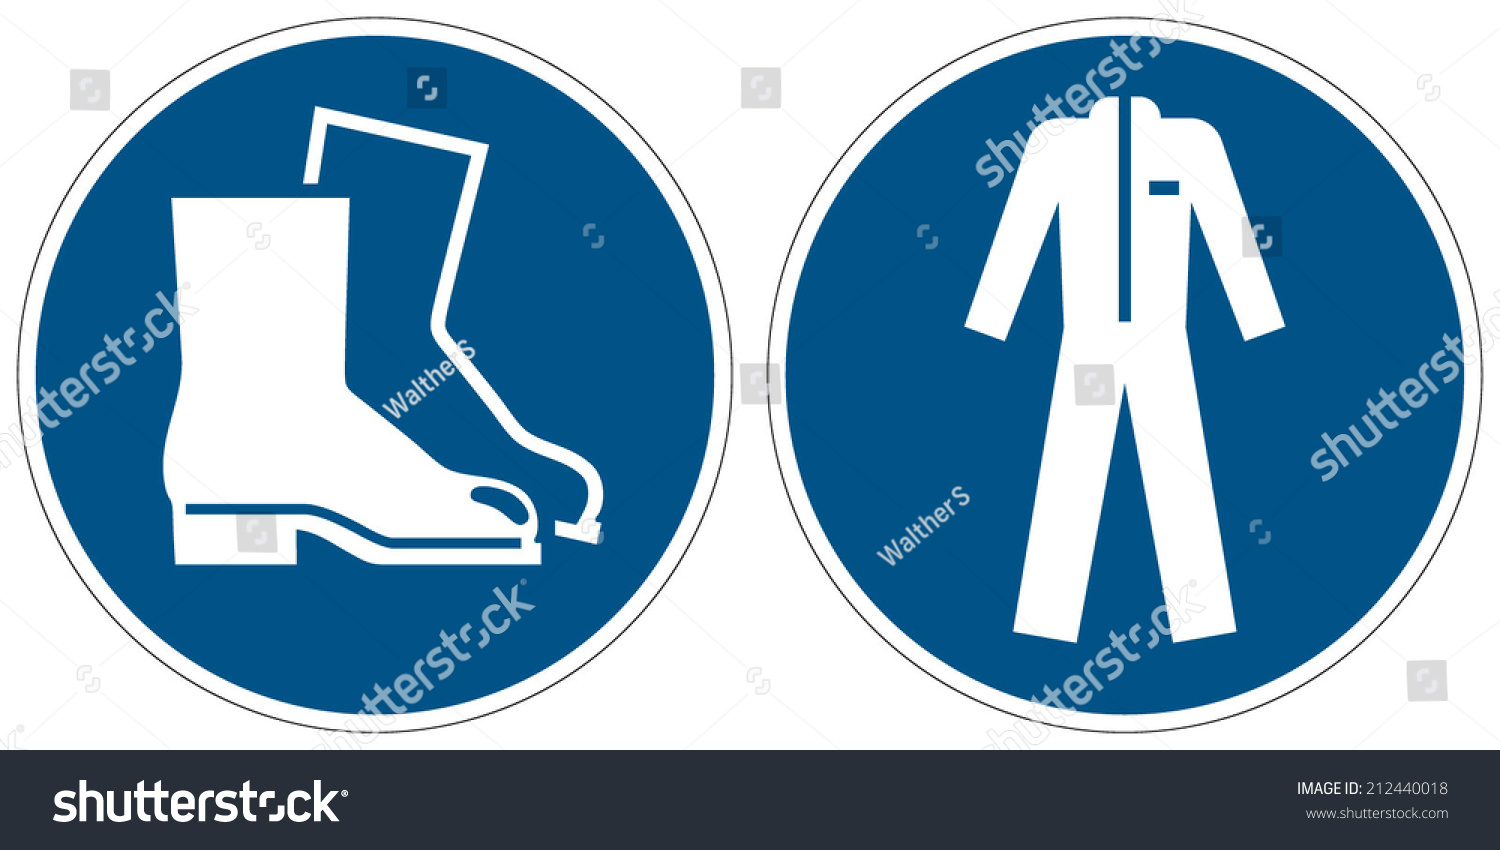 Wear Safety Footwear Wear Protective Clothing Stock Vector 212440018